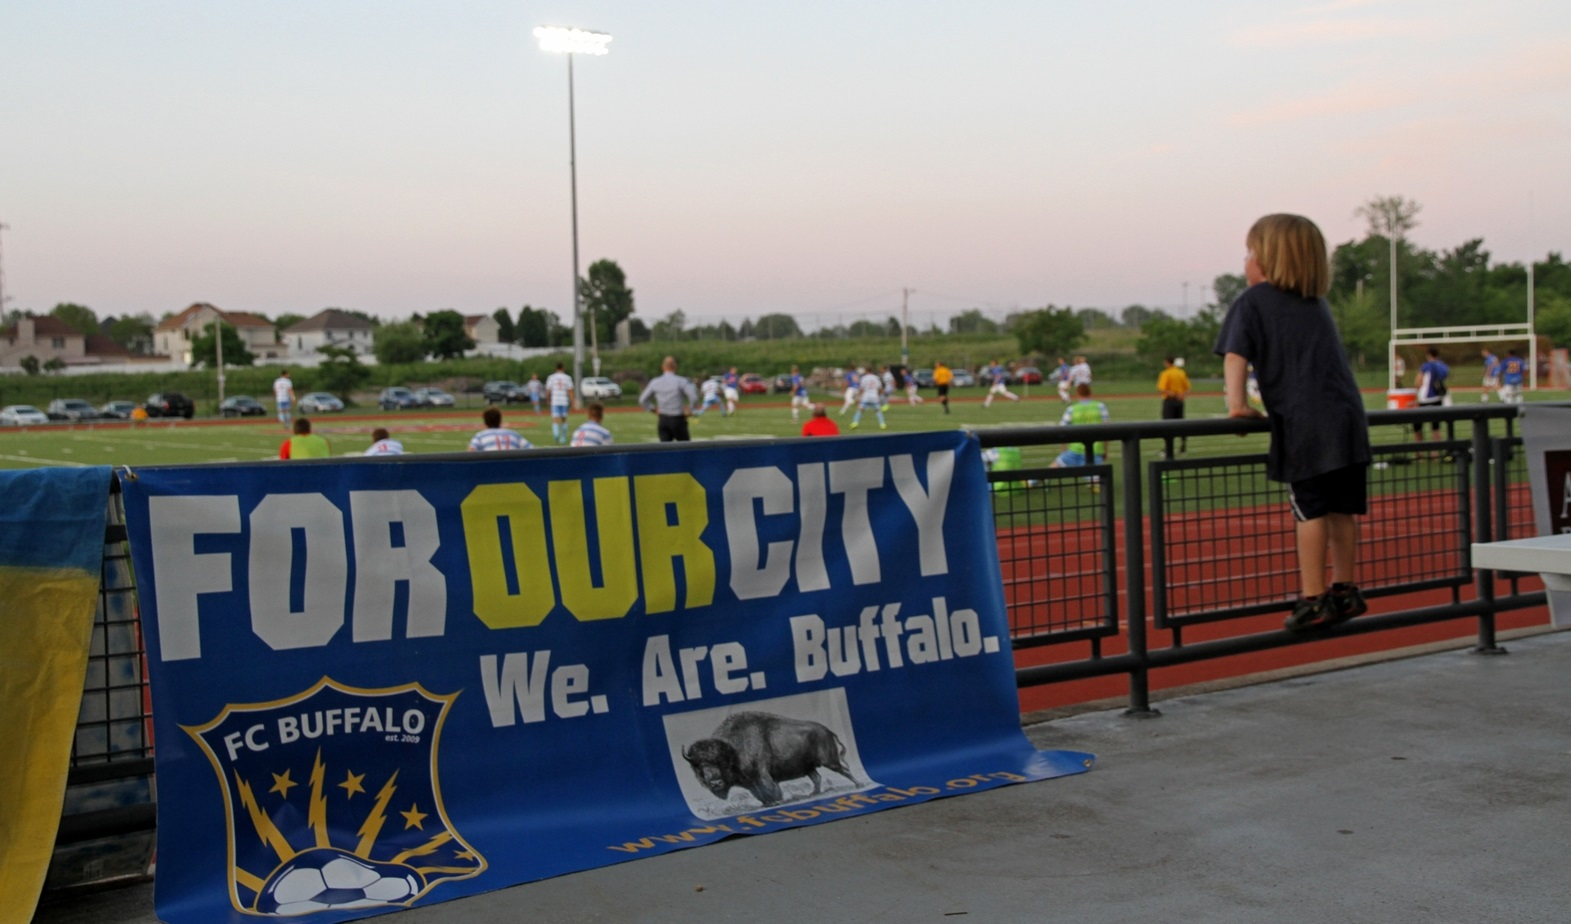 """A young fan watches an FC Buffalo match next to a club manner that sports the slogan """"For Our City."""" (Erica Malinowski/Special to The News)"""